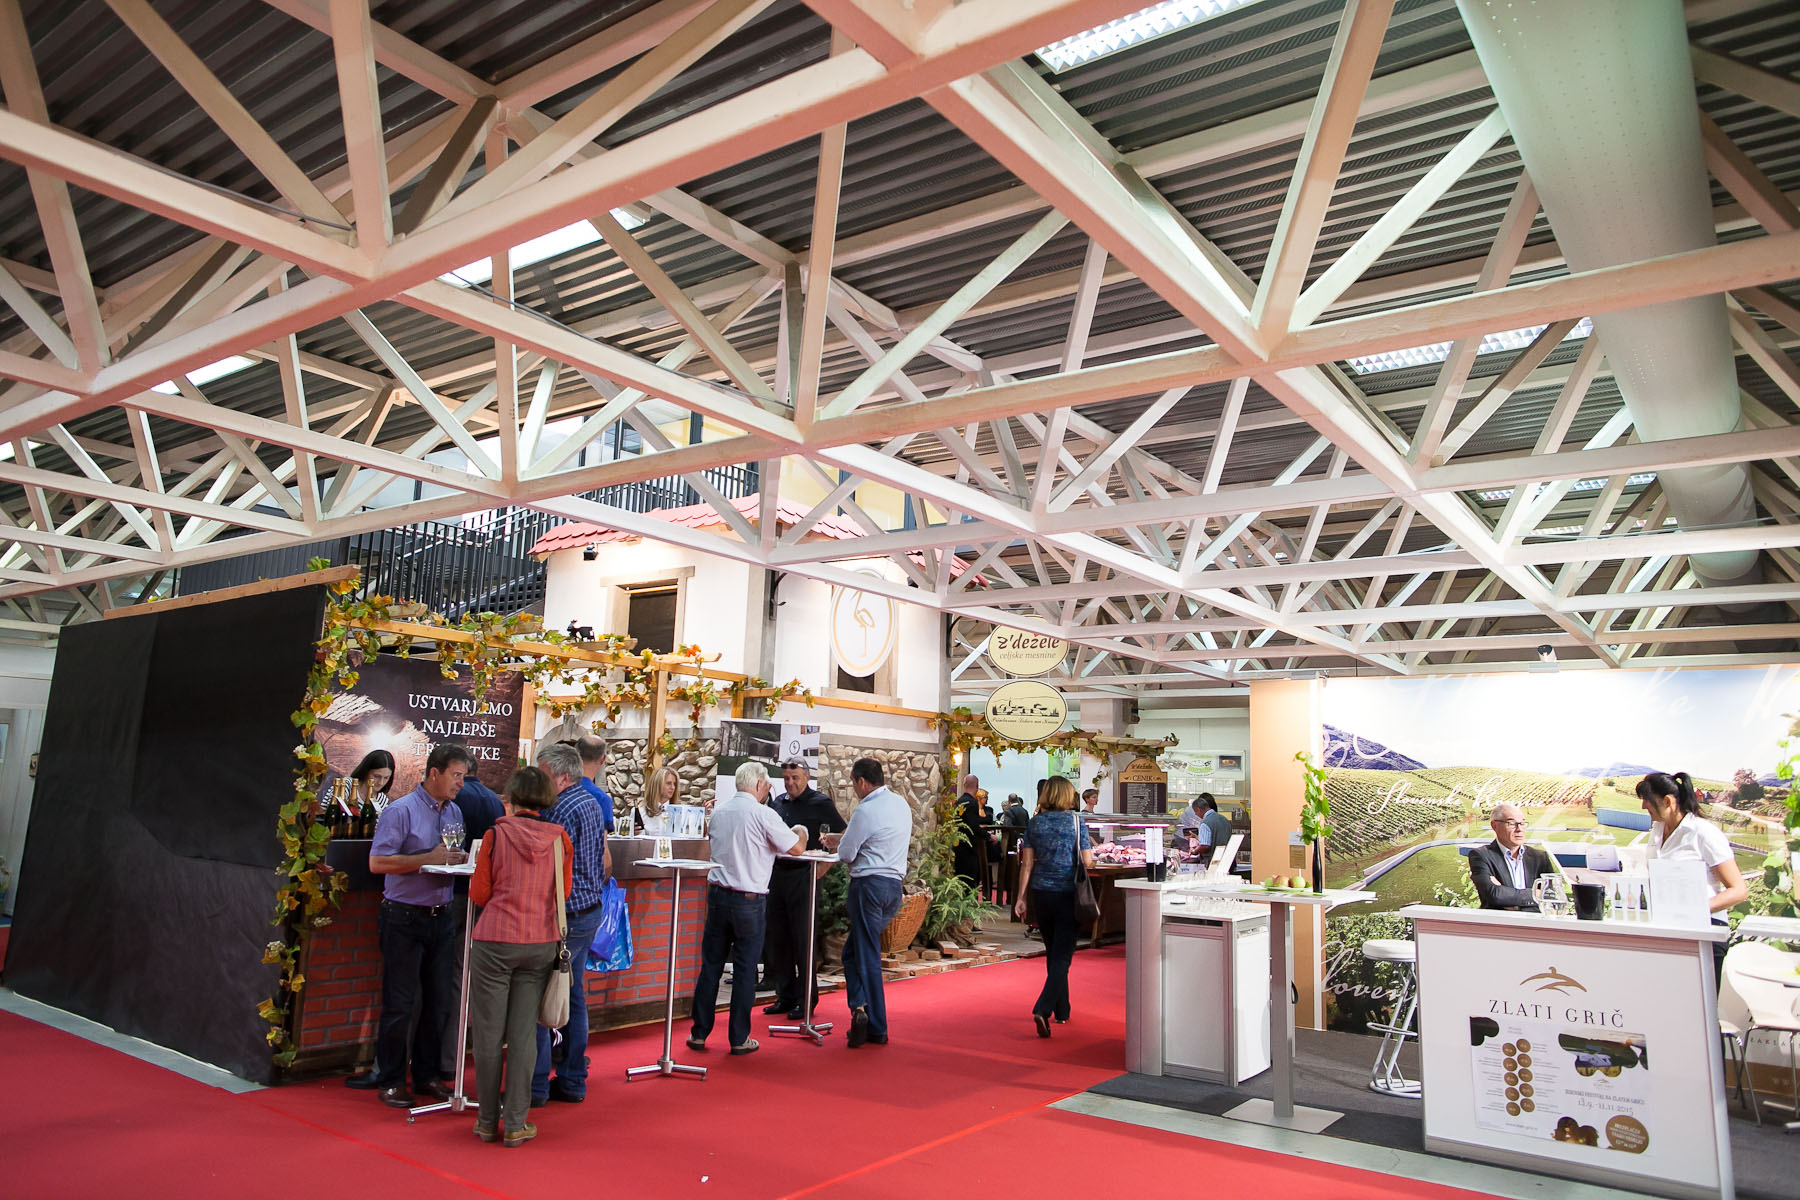 Slovenian wine makers present themselves at the 48th International Trade Fair in Celje, Slovenia, Sep. 8, 2015.